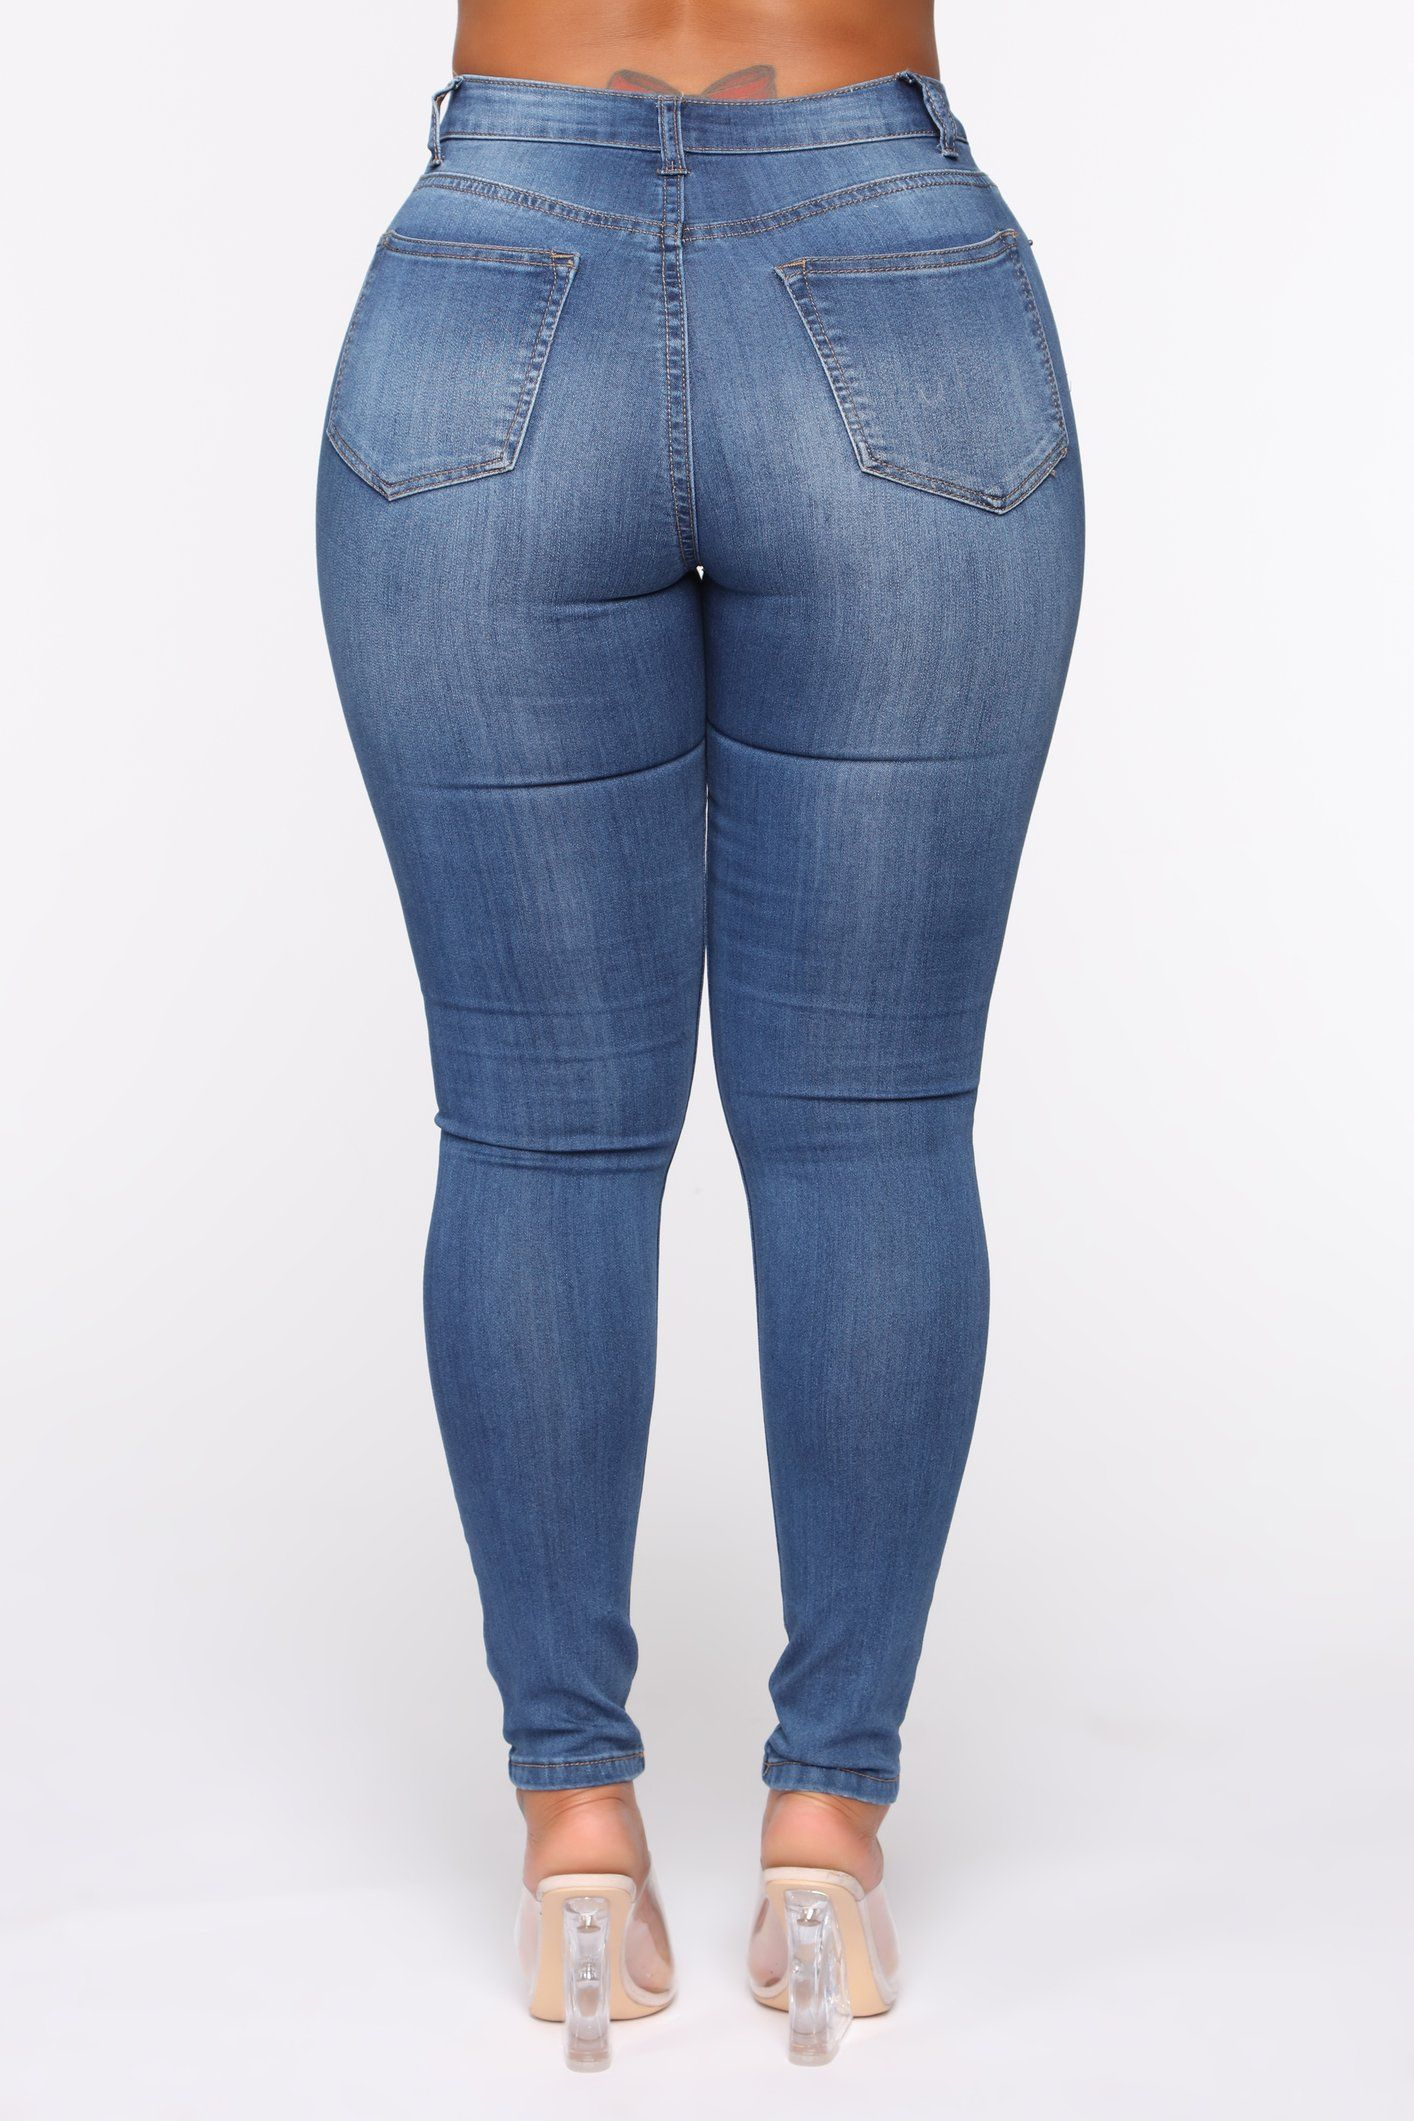 Ezra Skinny Jeans Medium Blue In 2021 Skinny Jeans Tight Jeans Girls Perfect Jeans